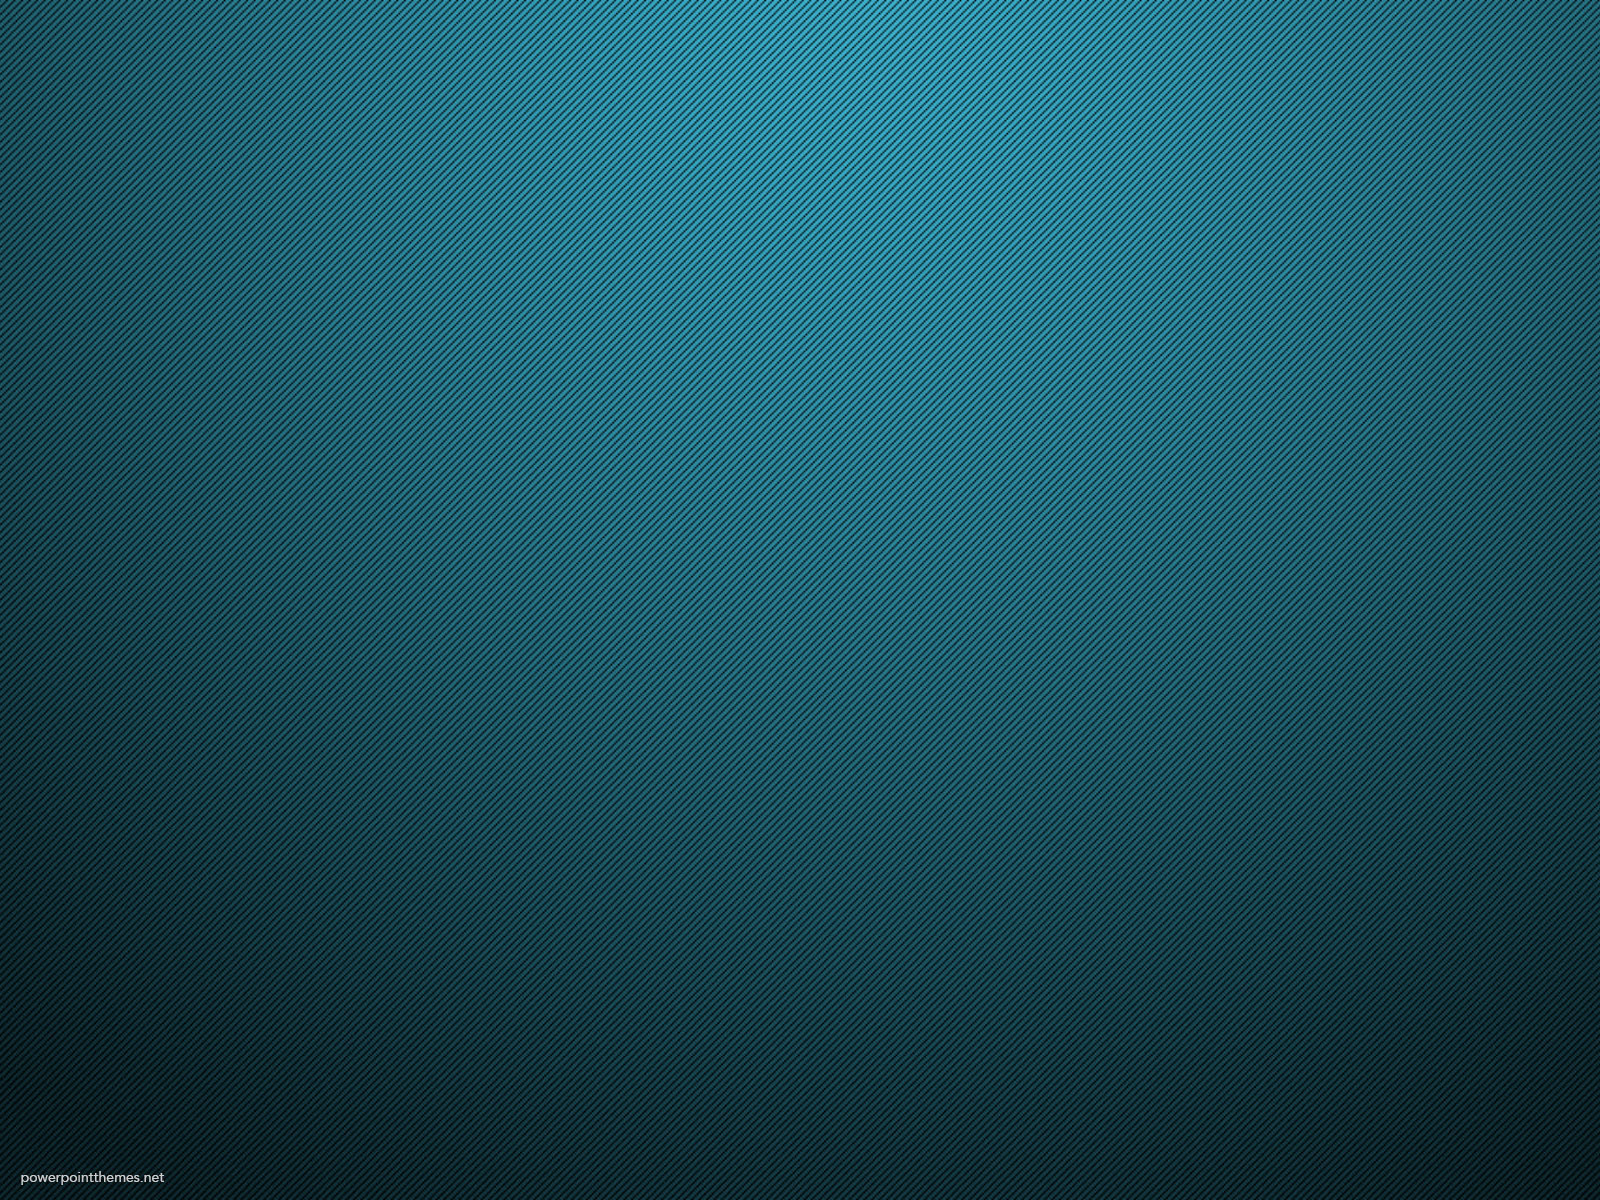 Minimalist Blue Green Background